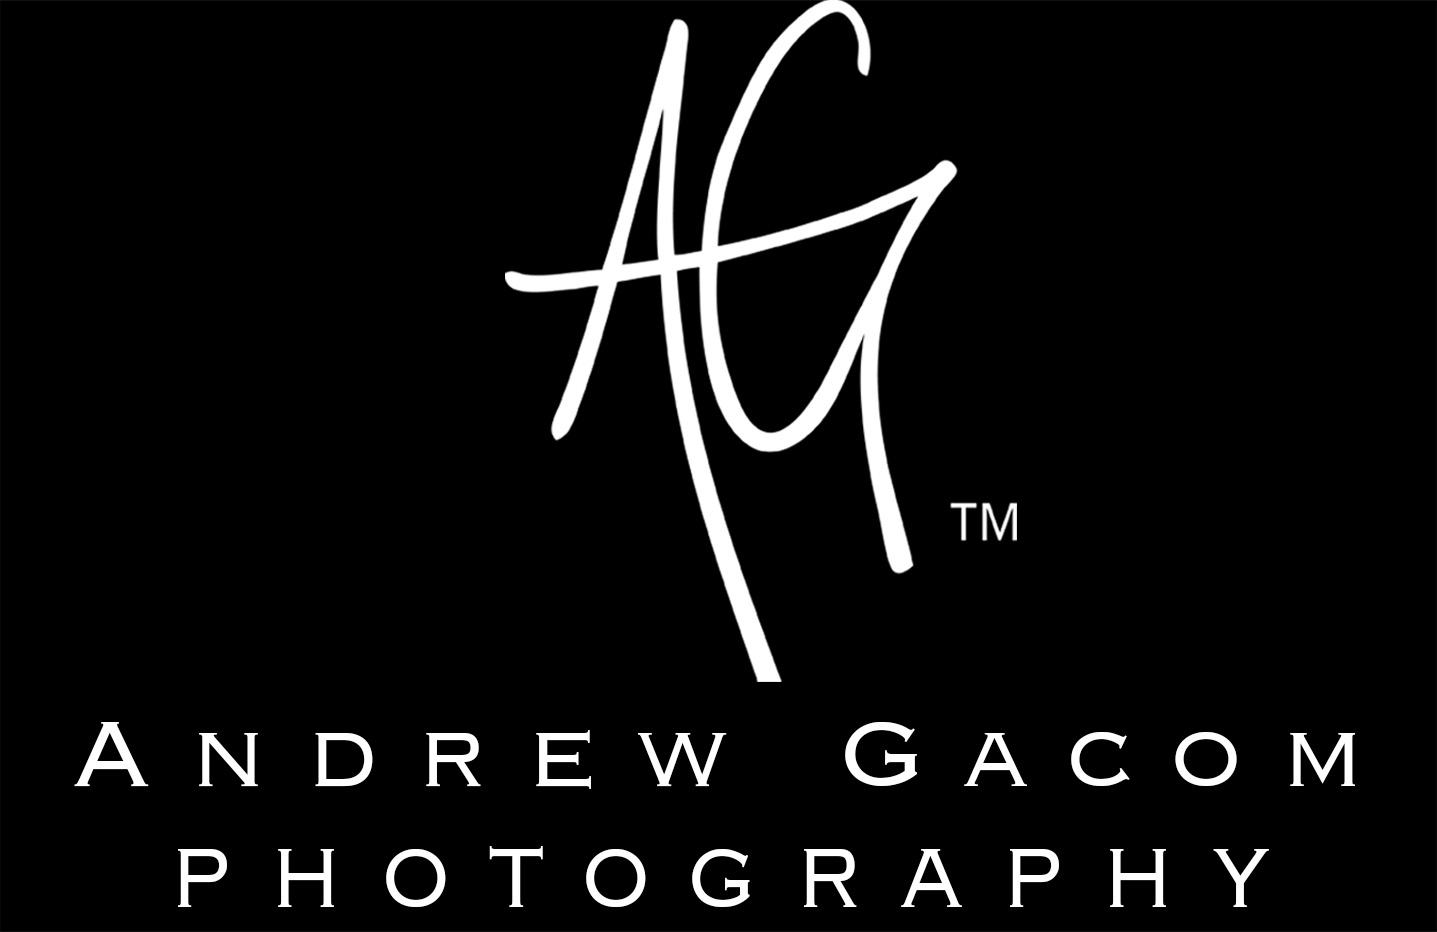 Andrew Gacom Photography